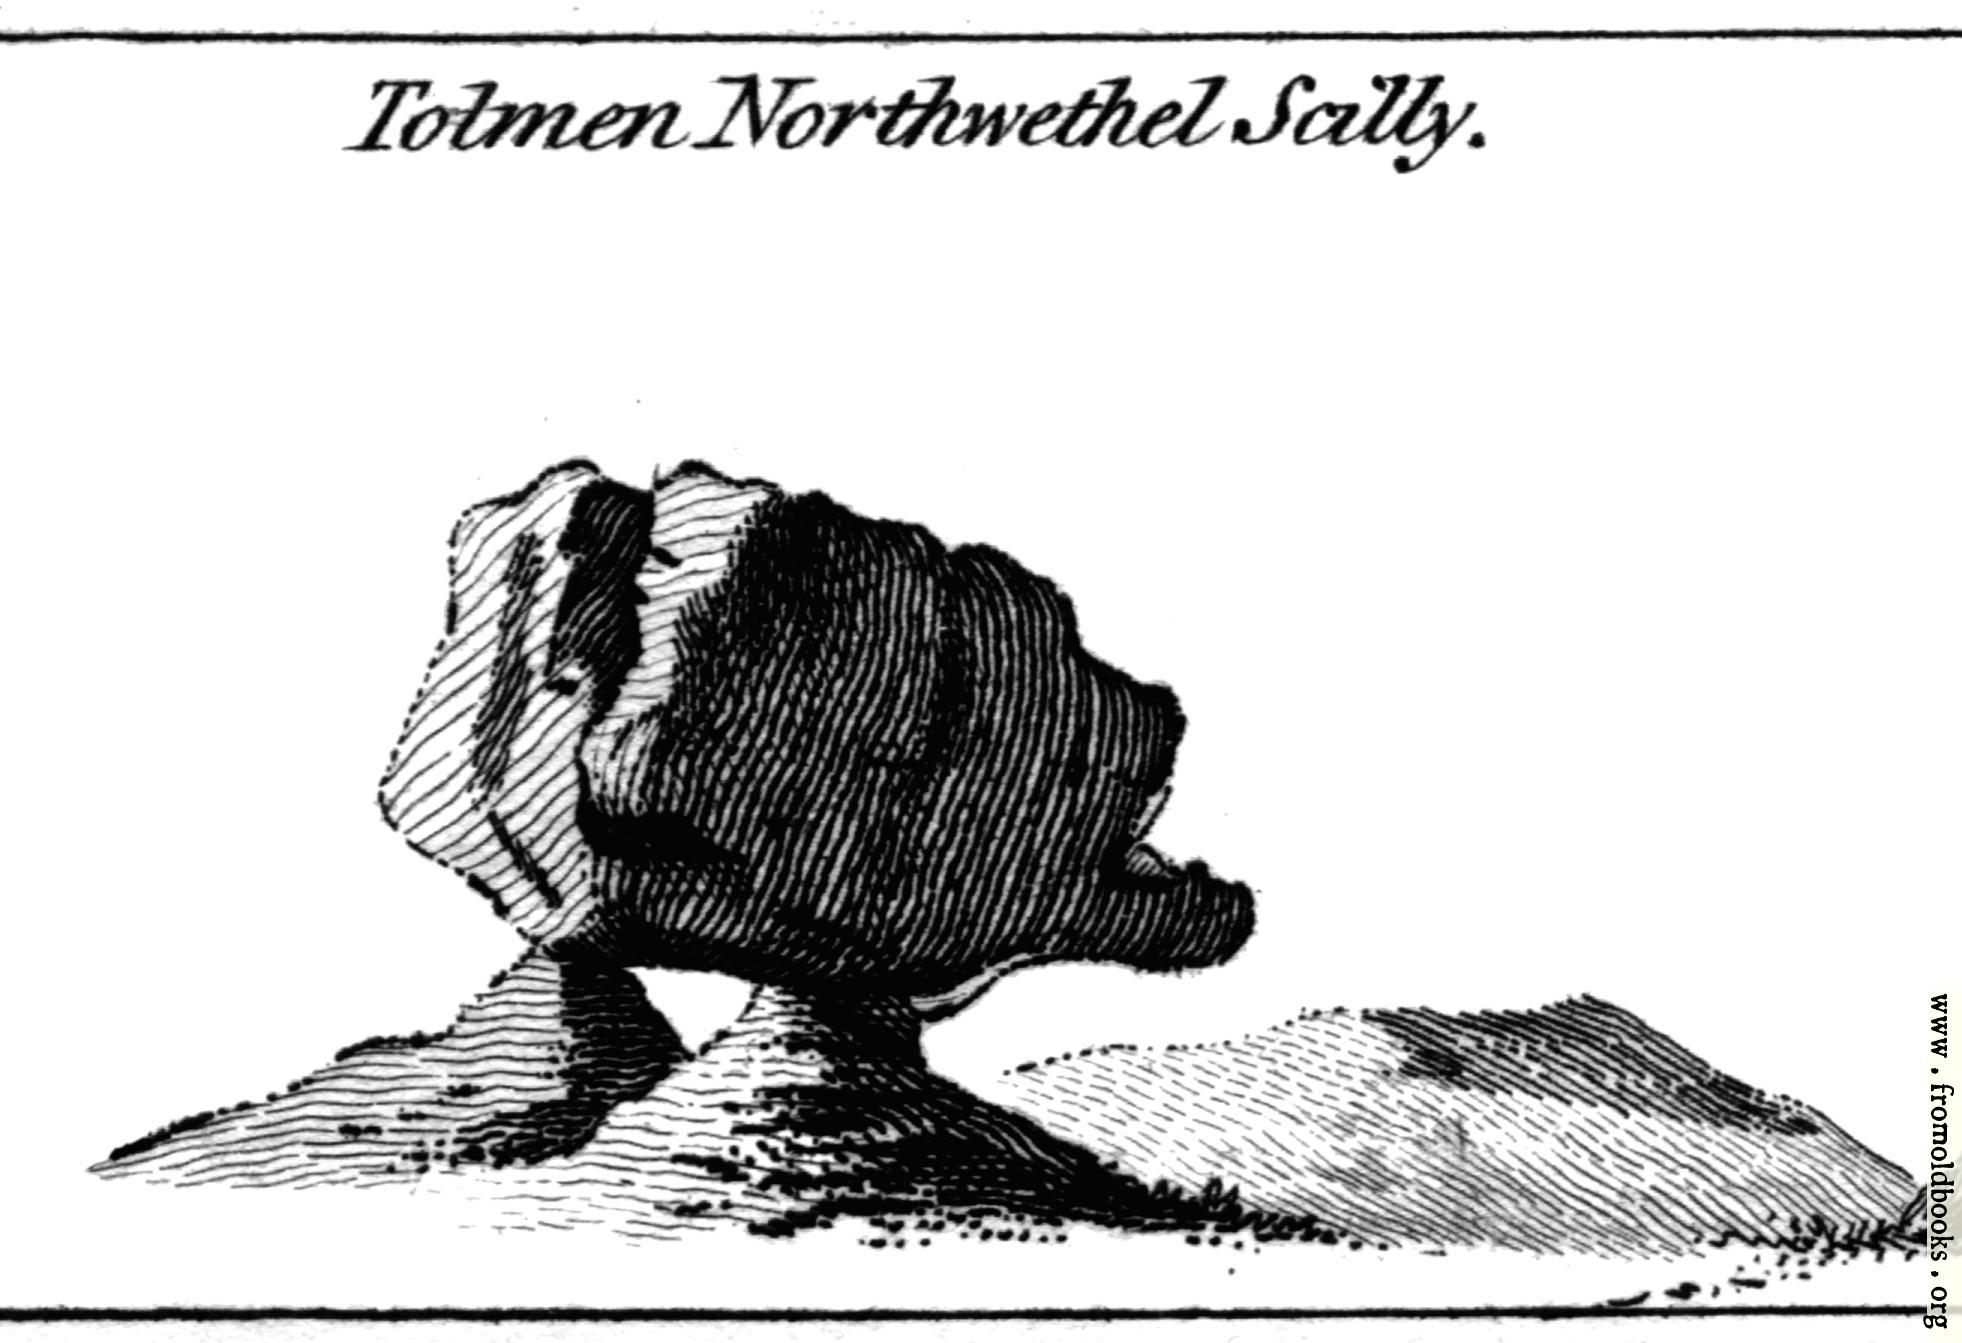 [Picture: Tolmen Northwethel Scilly.  From the Druidical Antiquities Plate.]